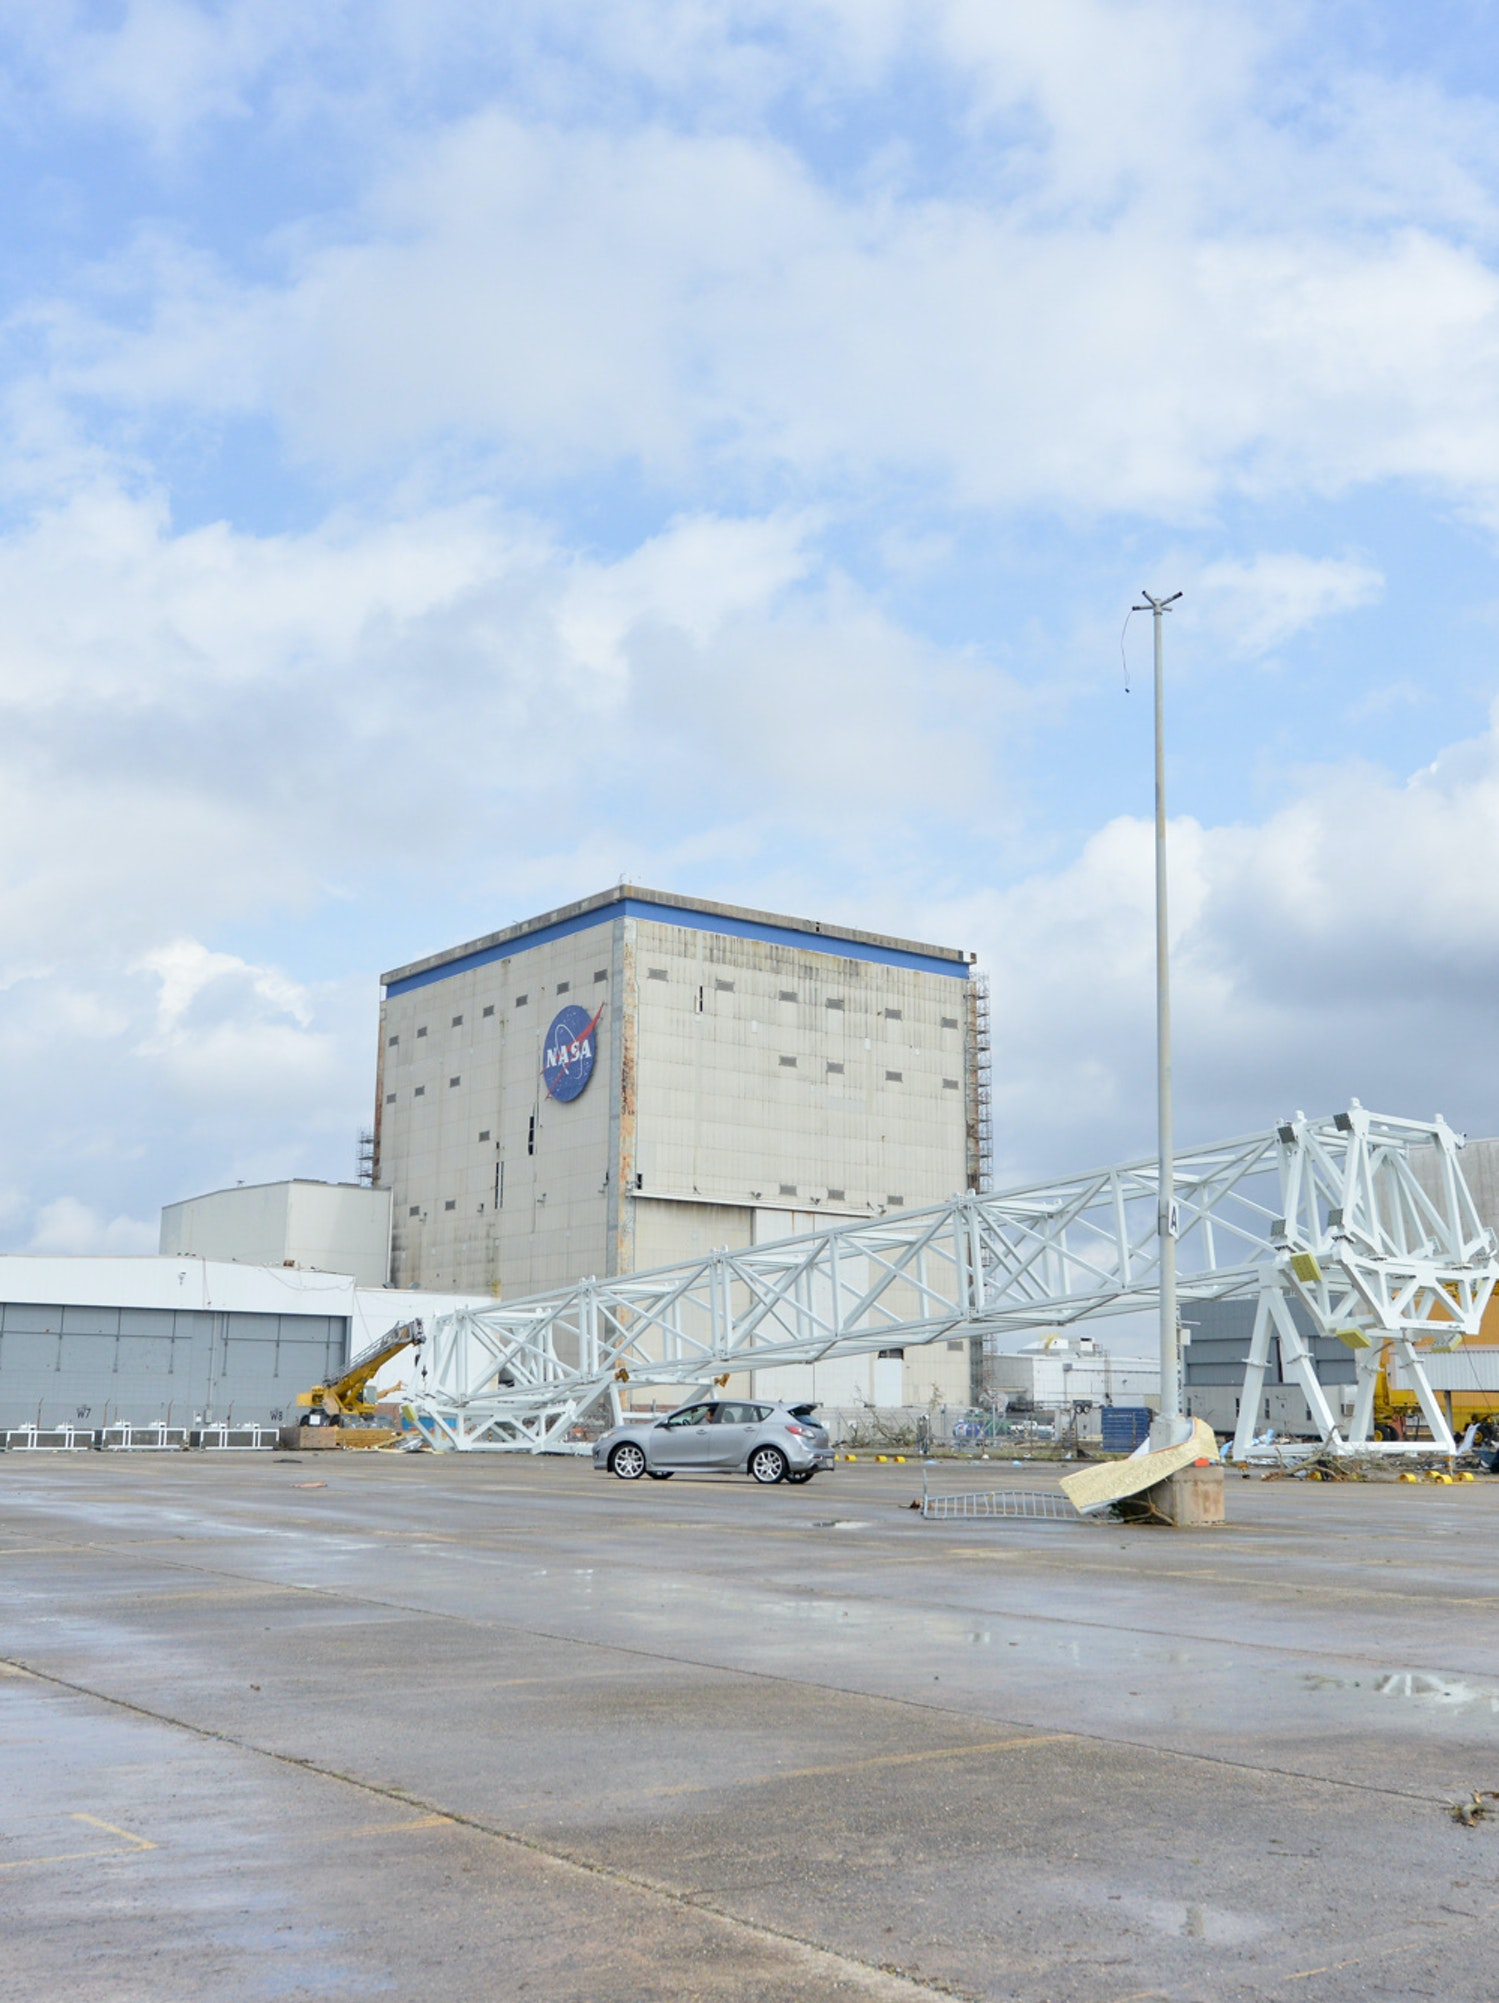 A tornado hit NASA's Michoud Assembly Facility in New Orleans Tuesday morning, and recovery is now underway.